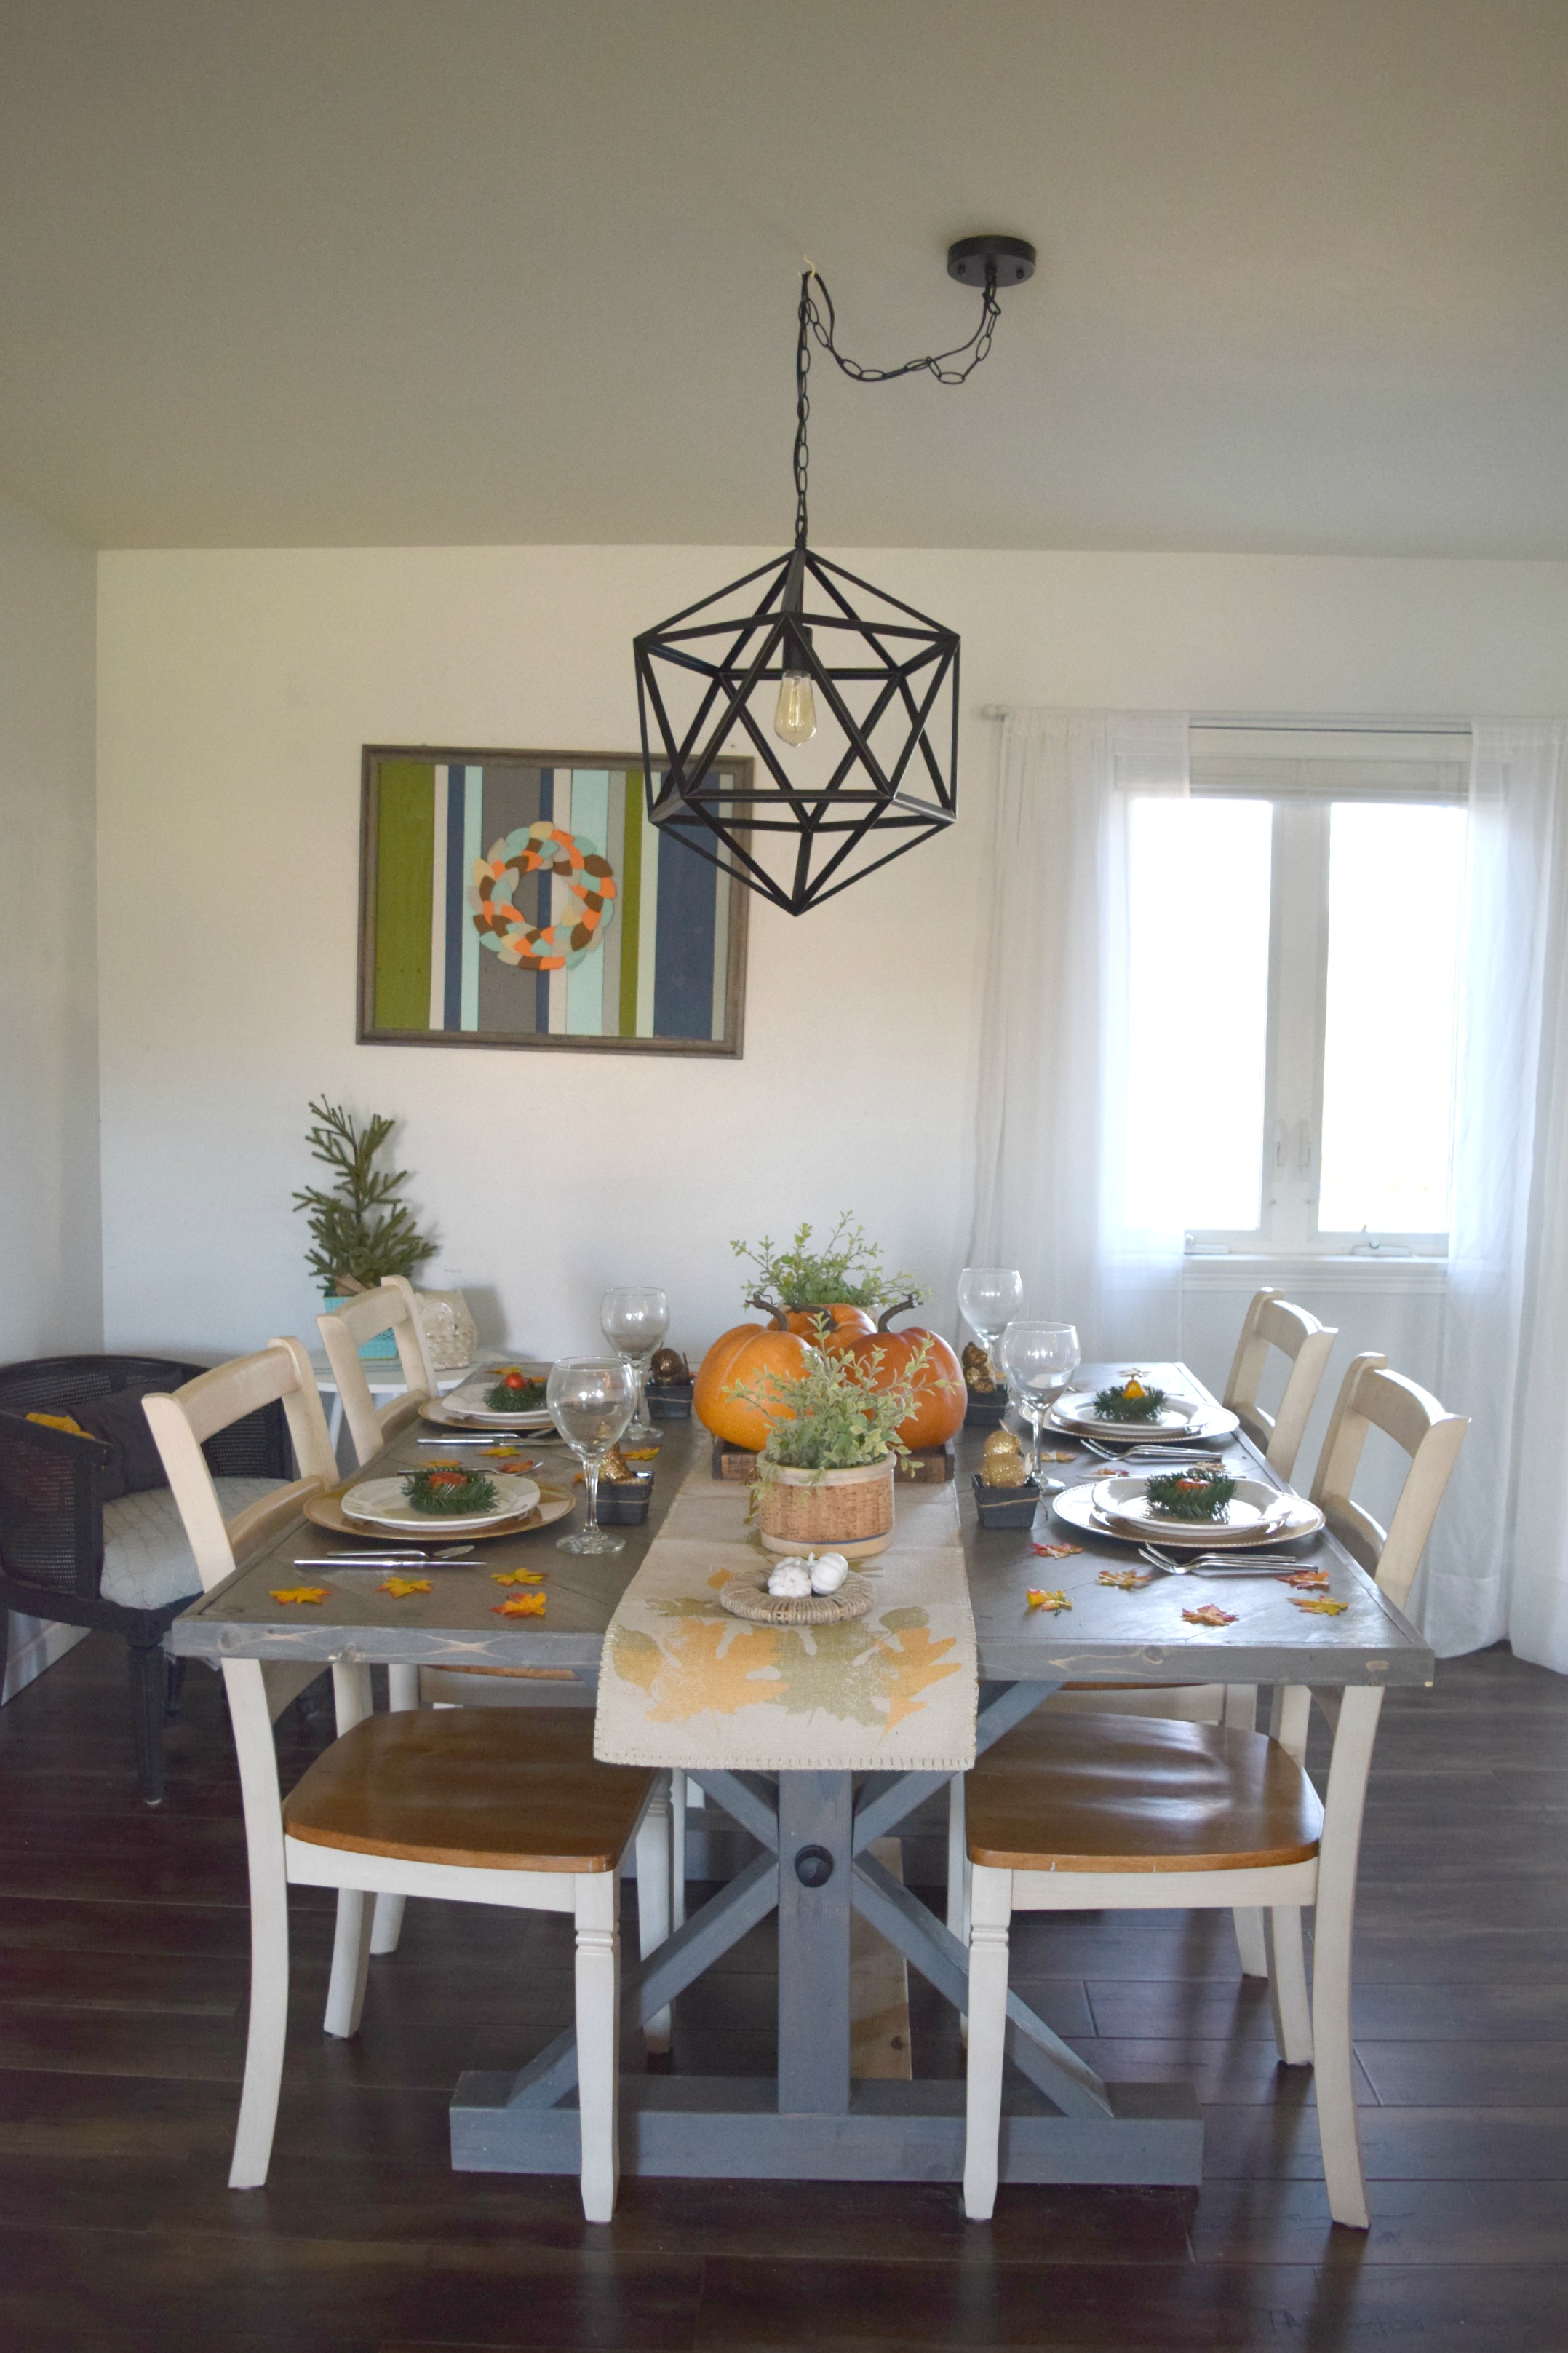 thanksgiving table set up in dining room